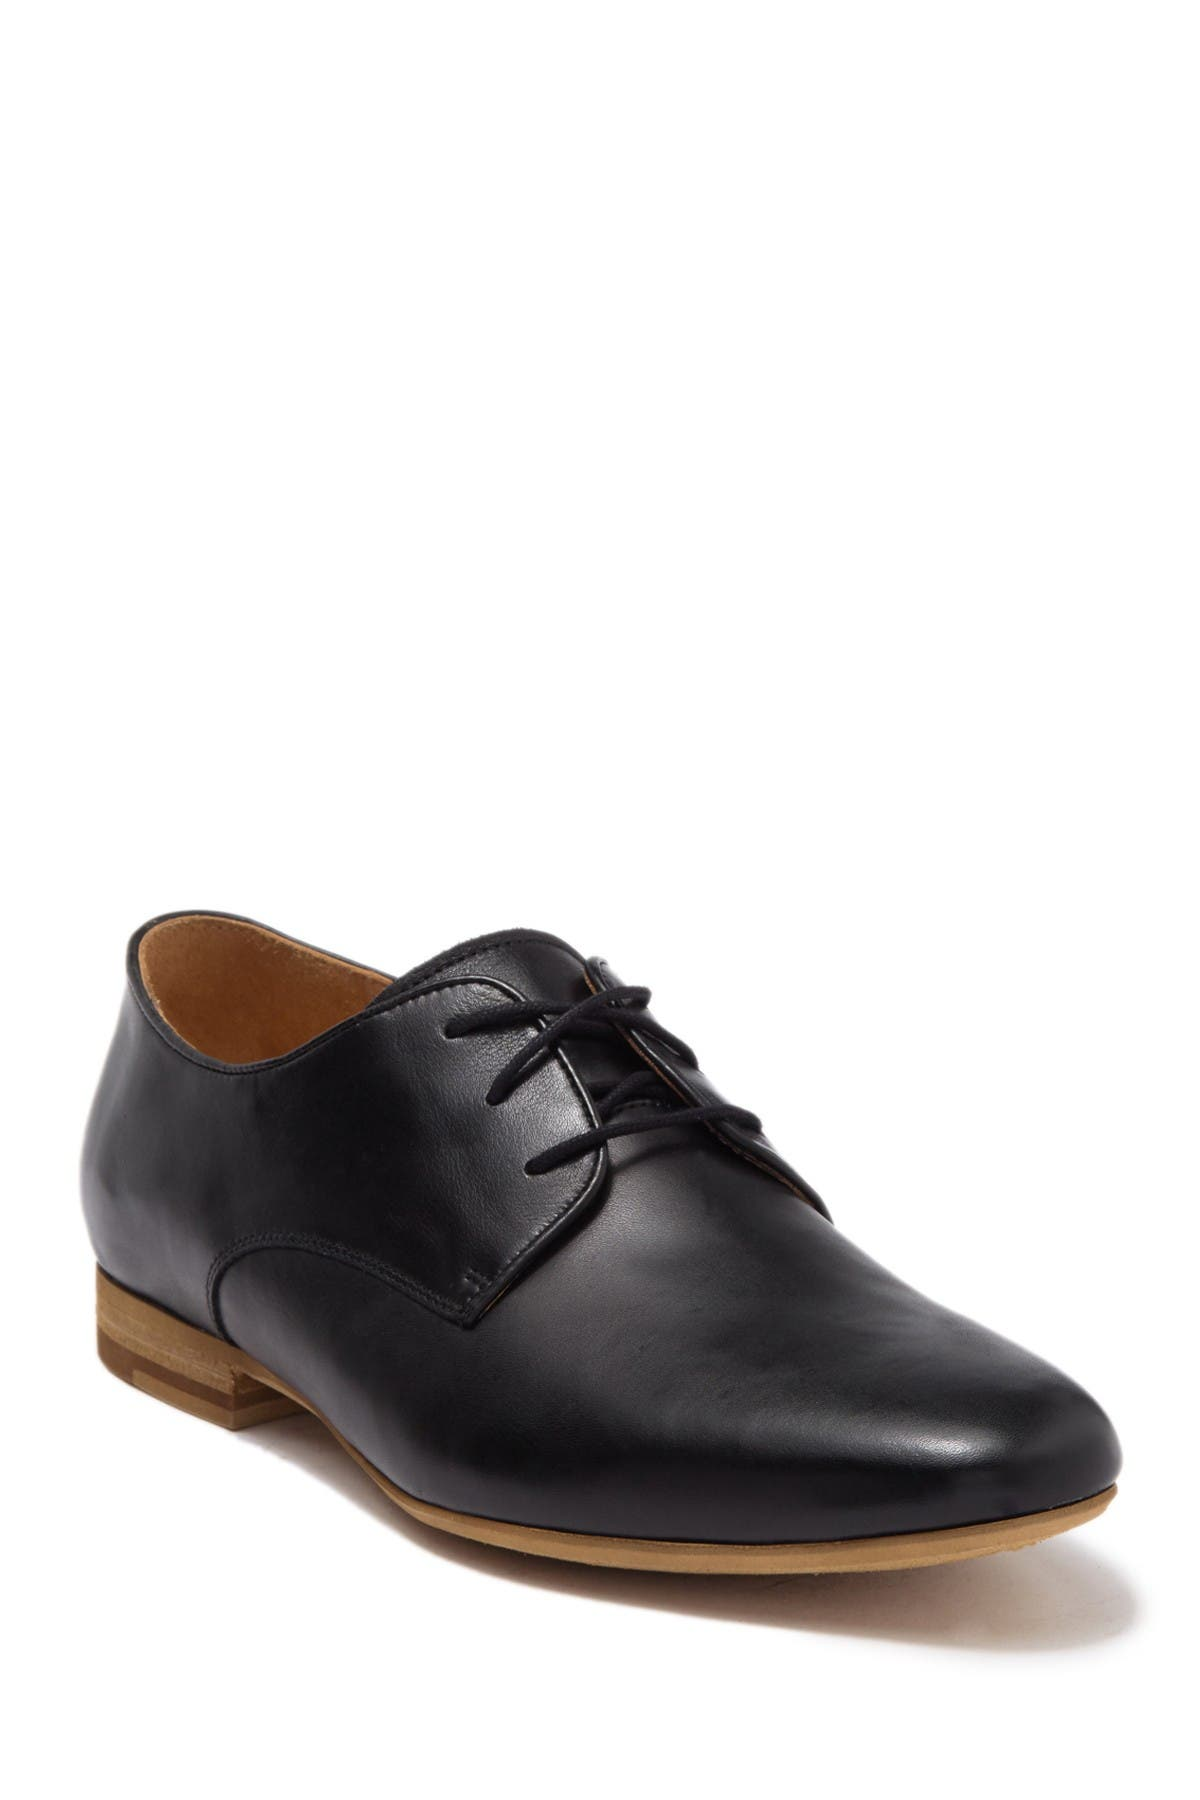 Image of Curatore Aversa Burnished Leather Derby